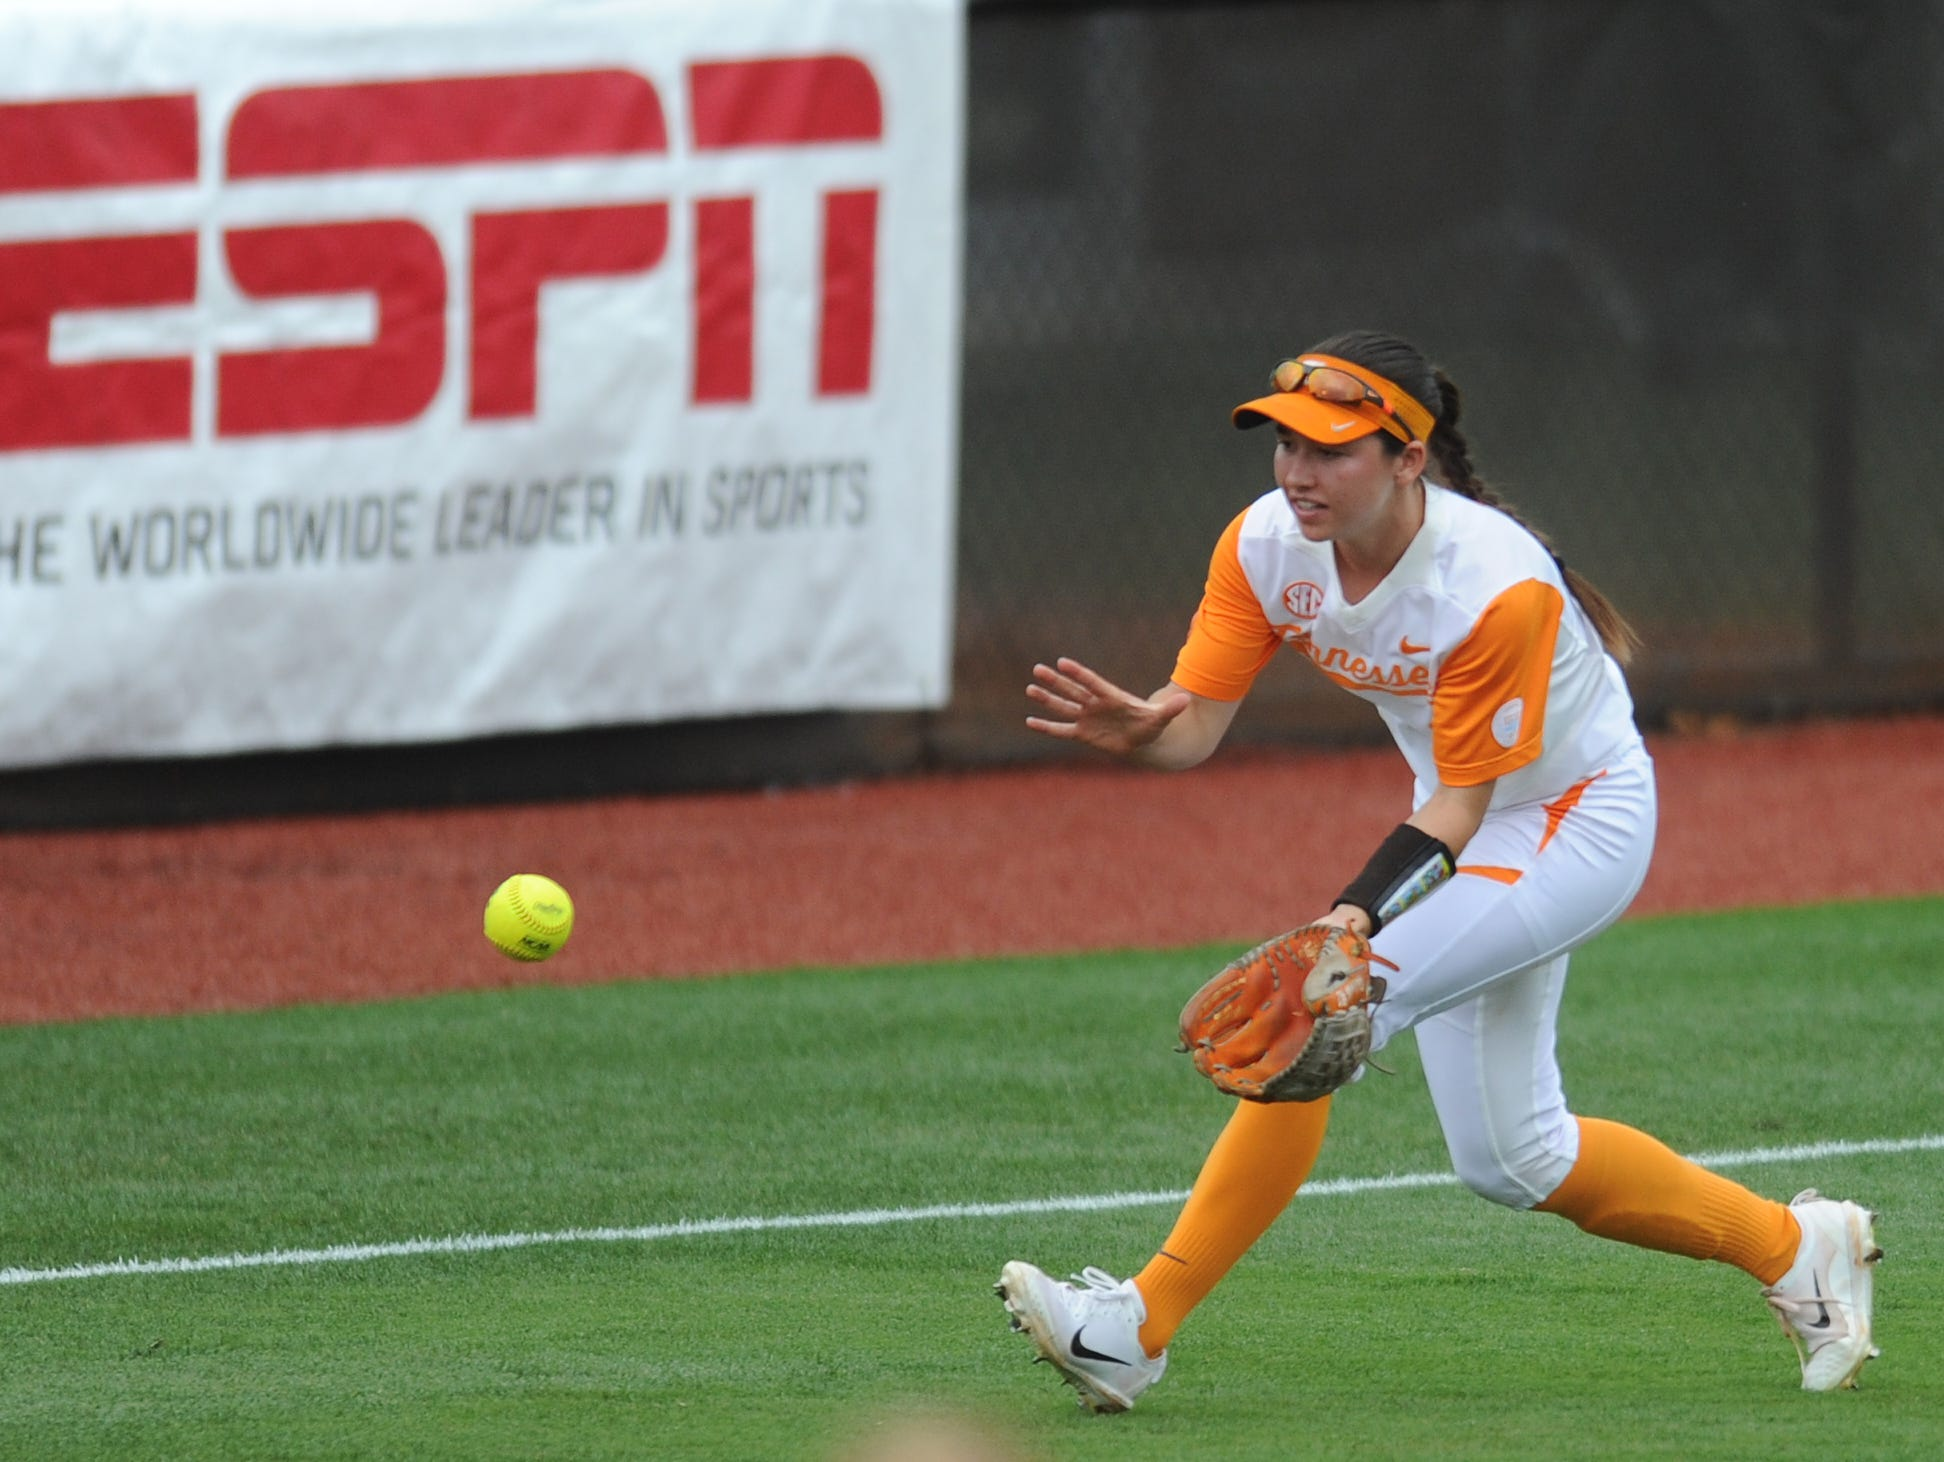 Tennessee's Jenna Holcomb (2) prepares to make a play during an NCAA Super Regional game between Tennessee and Texas A&M at Sherri Parker Lee Stadium on Sunday, May 28, 2017.